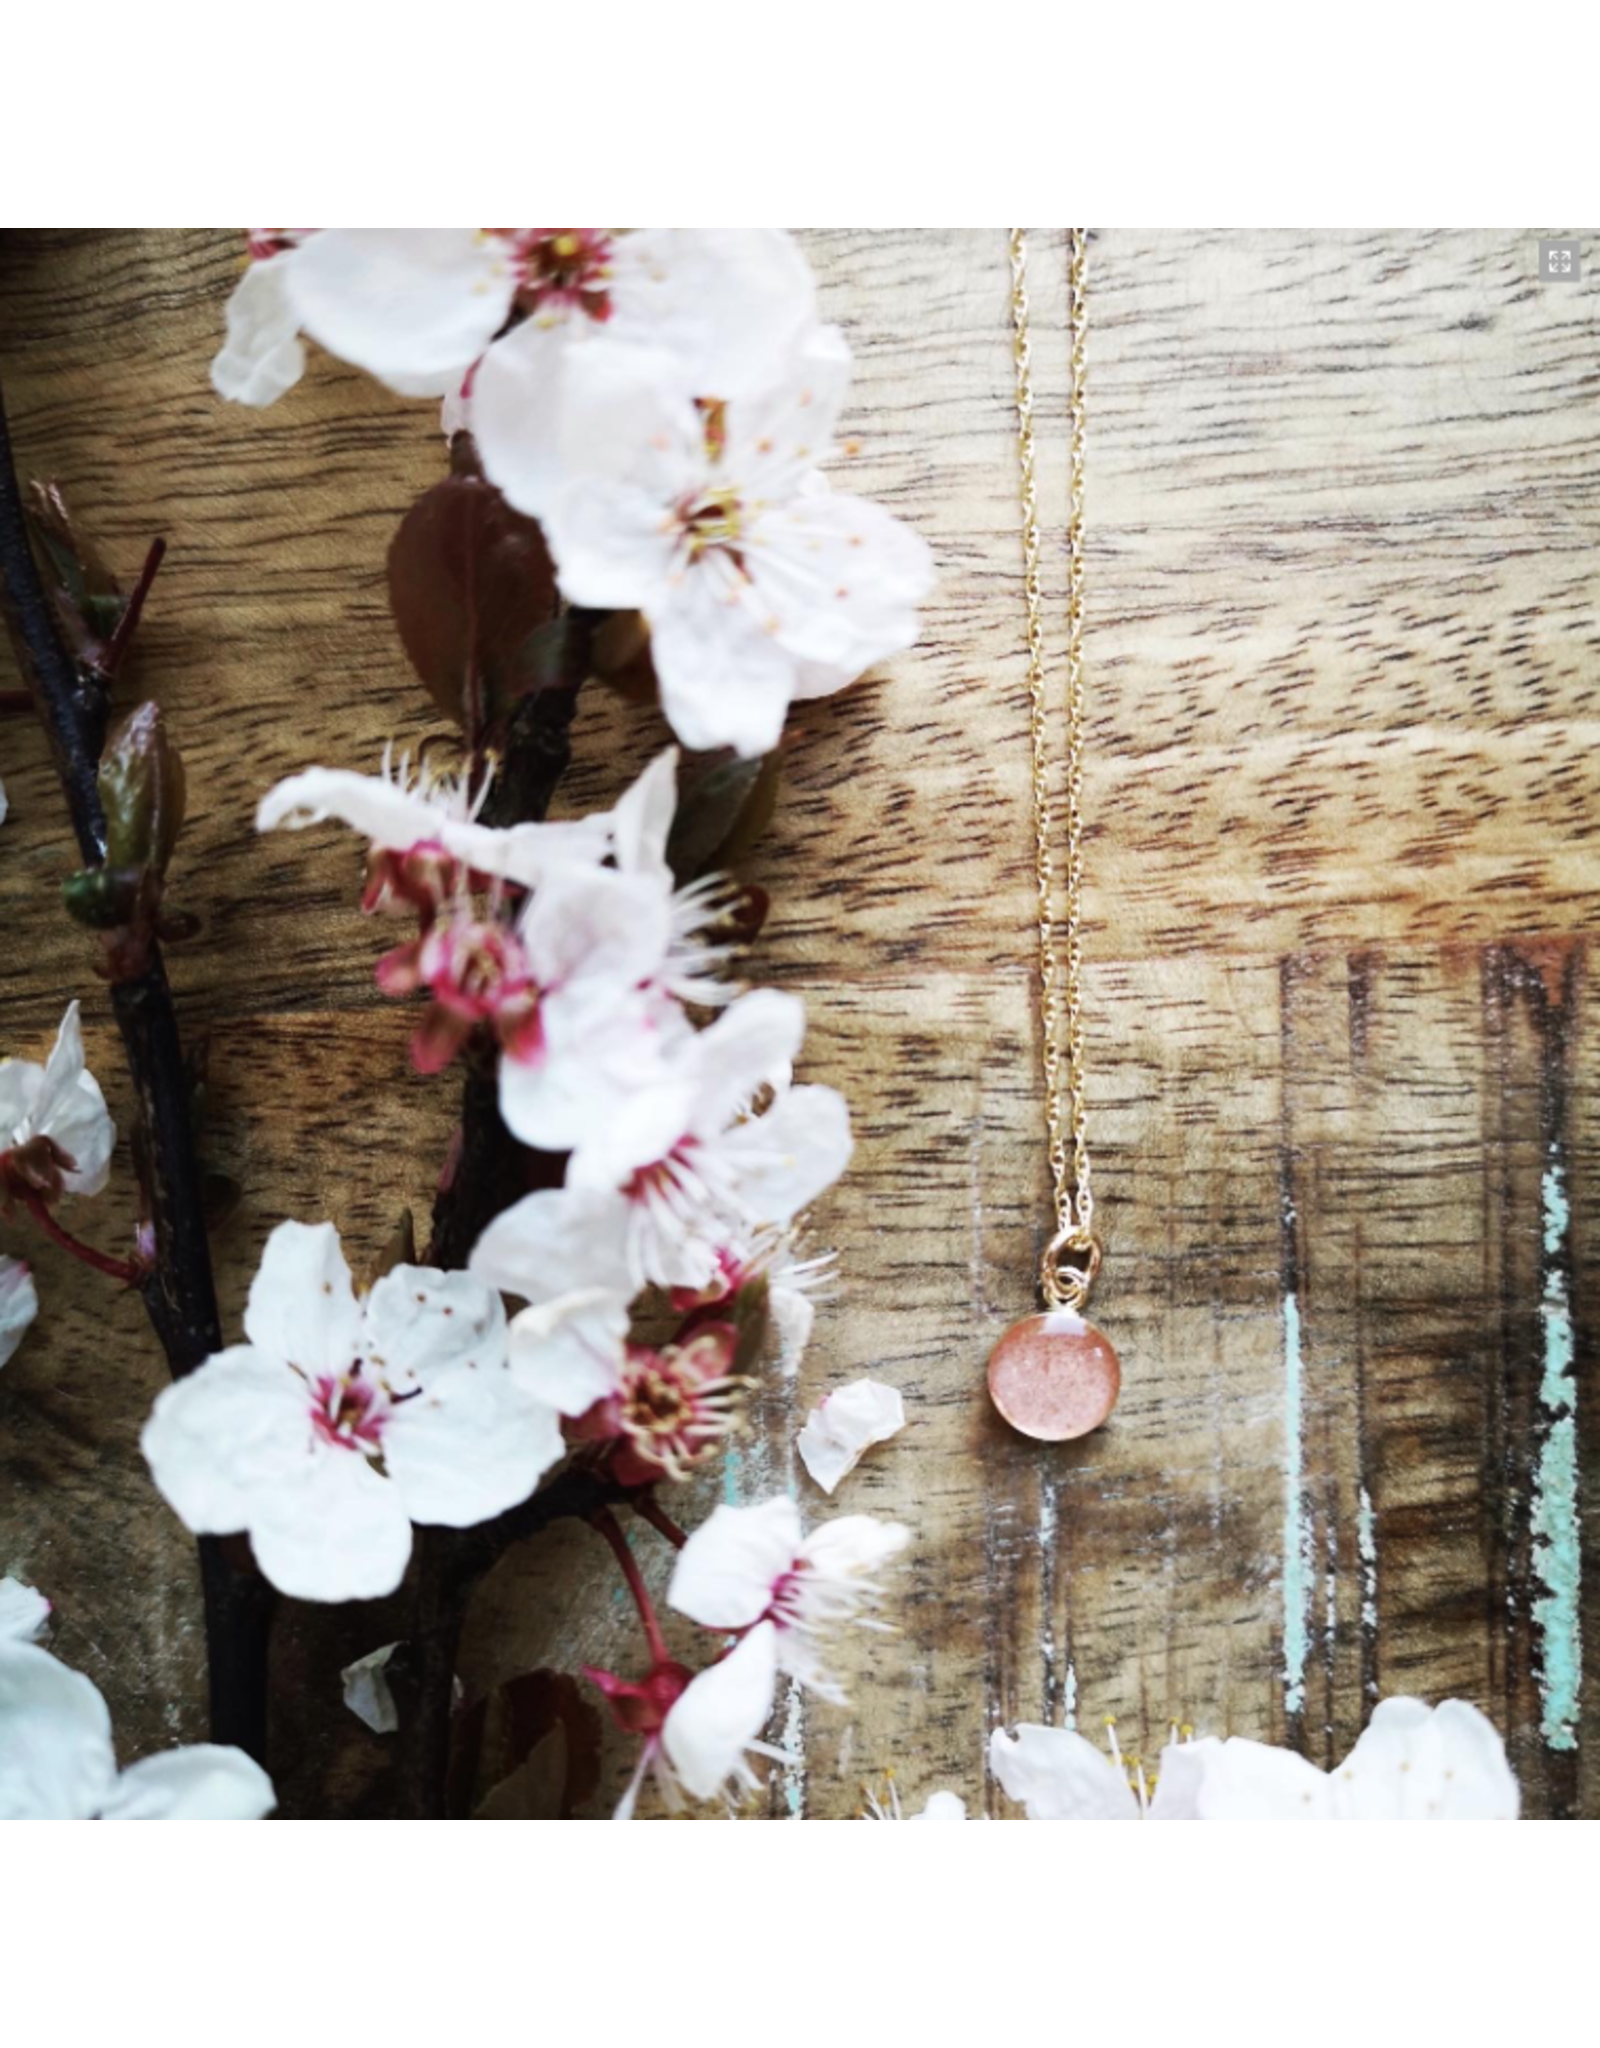 B.C Cherry Blossom 8mm Gold Necklace - VCB0108G